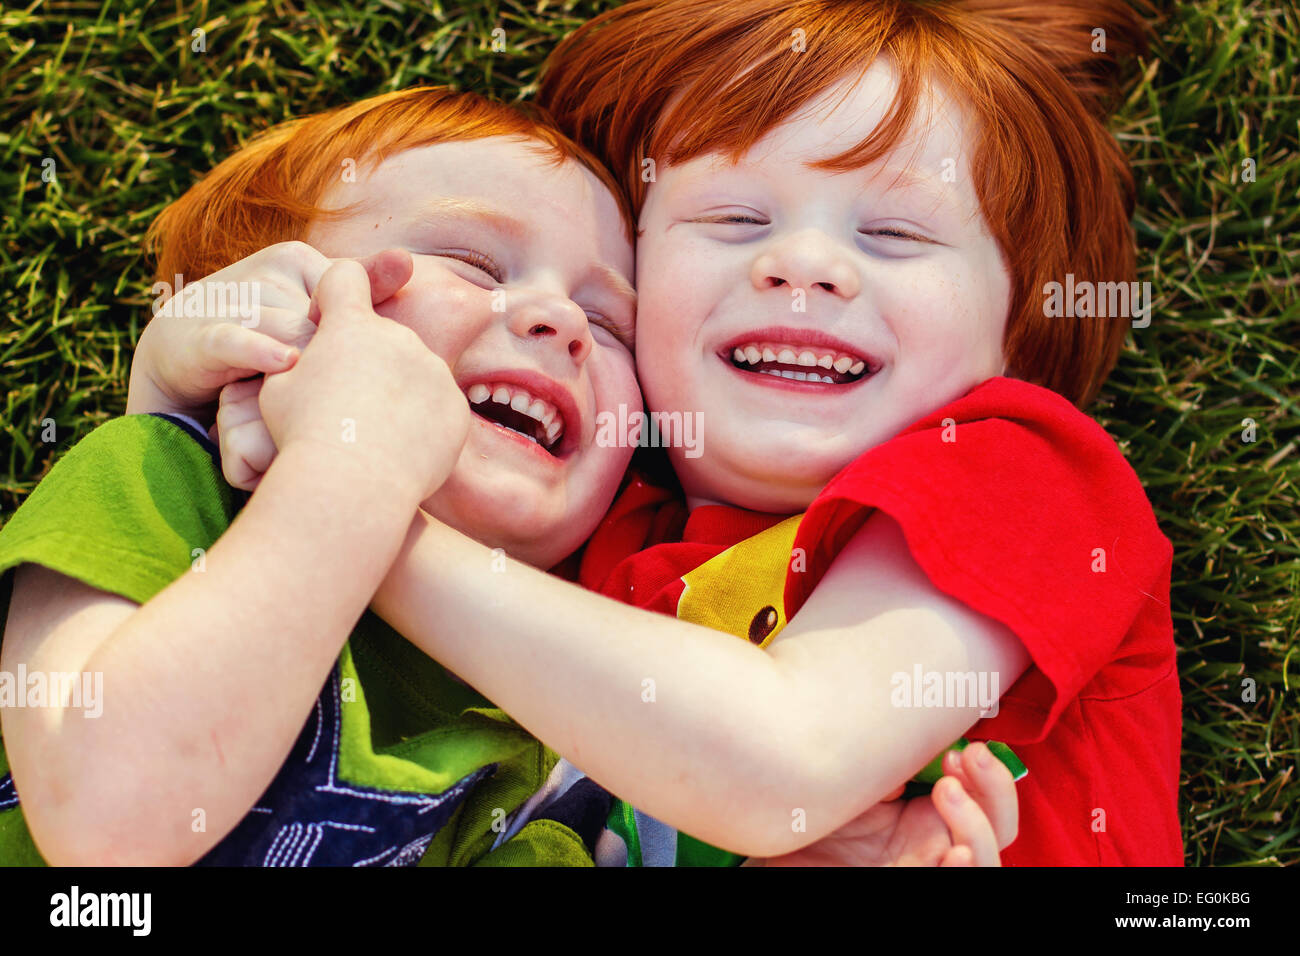 Two happy boys lying on grass laughing - Stock Image